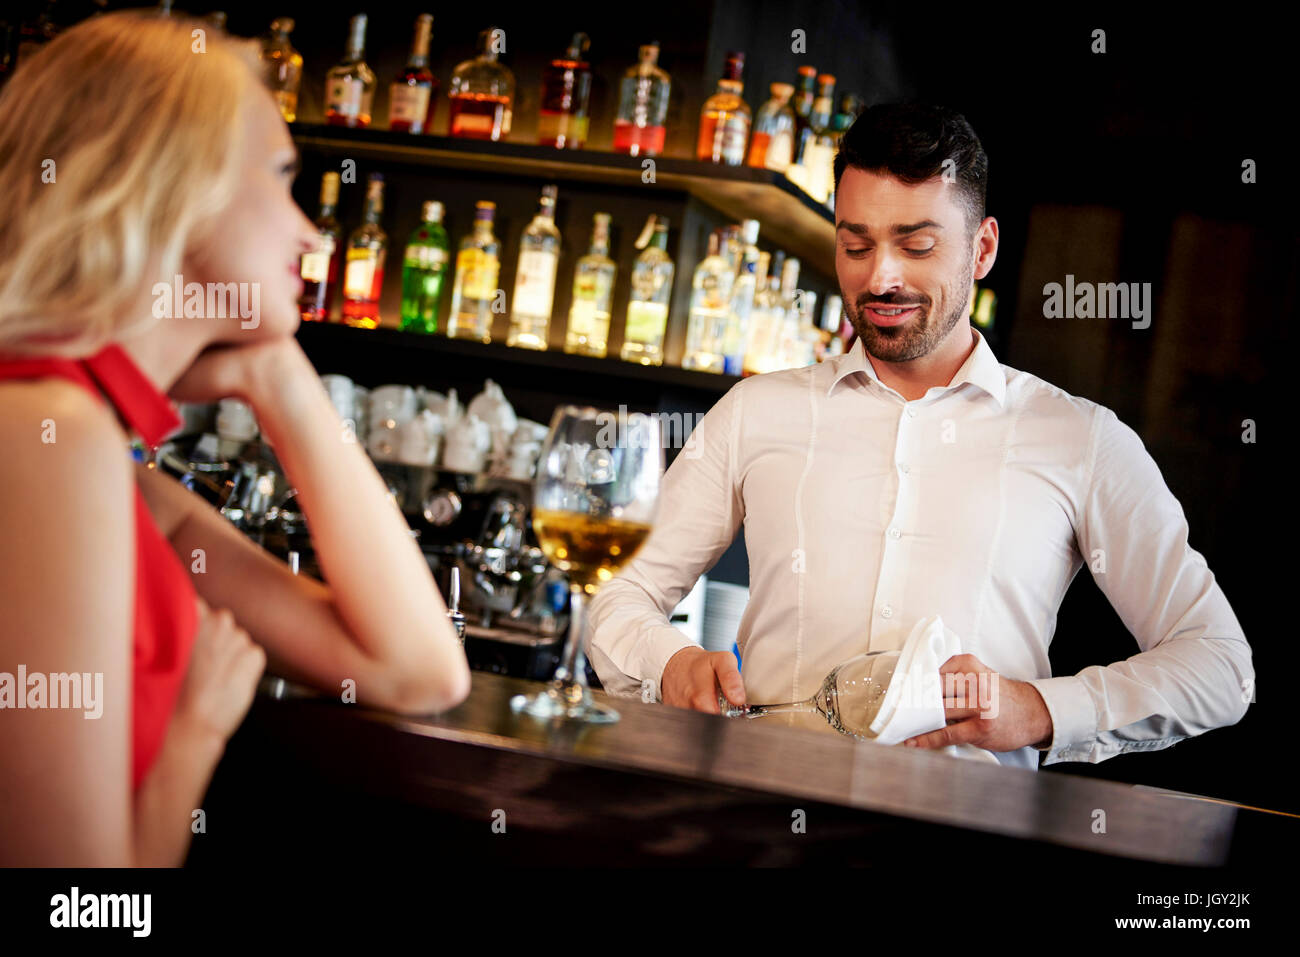 Barman flirting with young woman sitting at bar - Stock Image